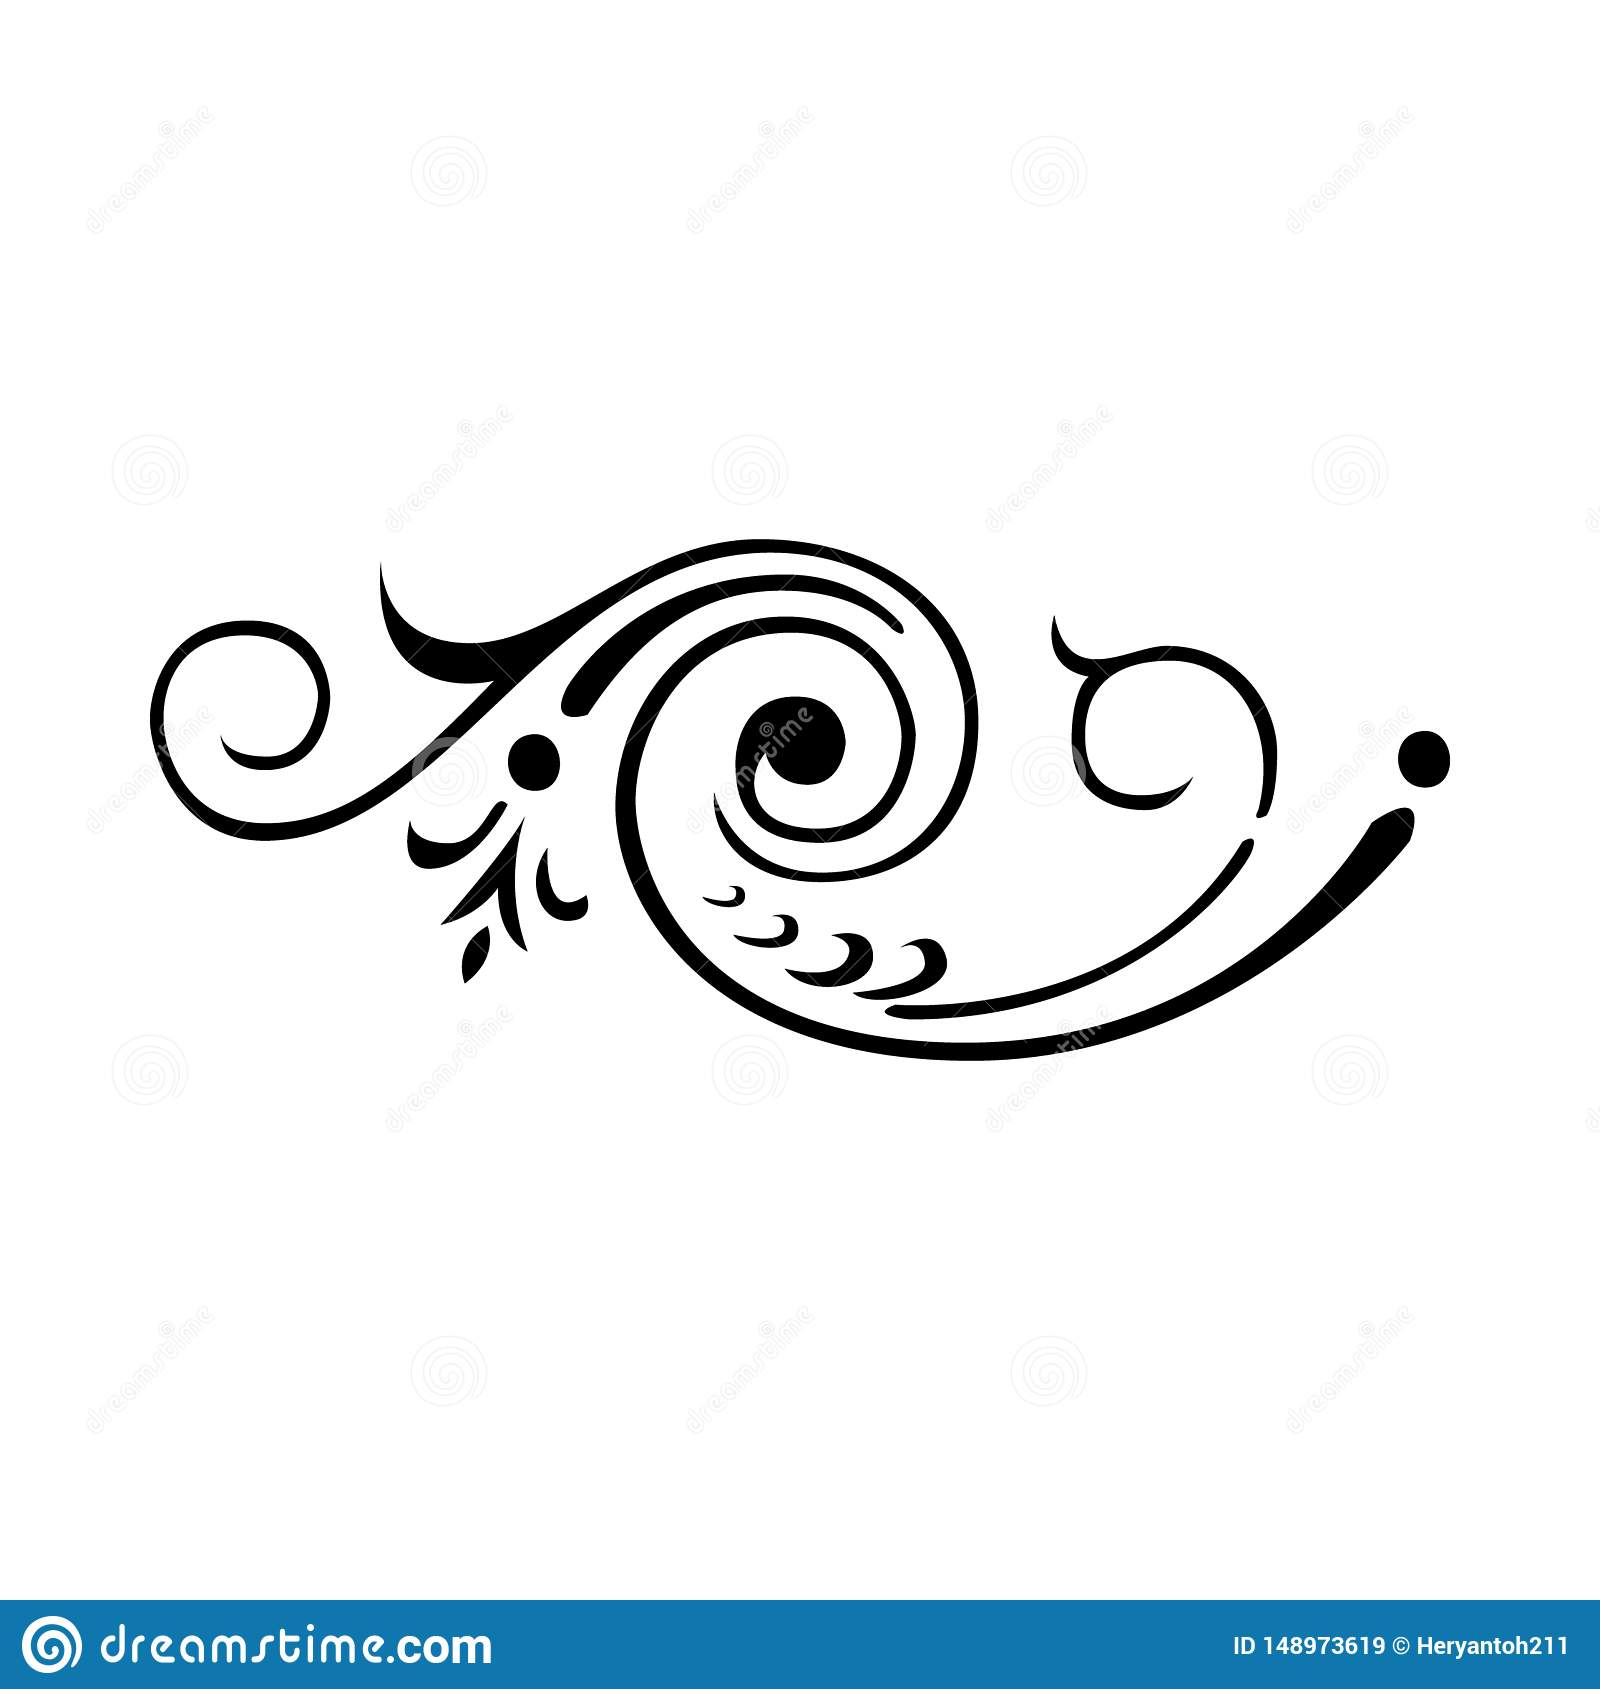 The Abstract Symbol With A Simple Batik Design Stock